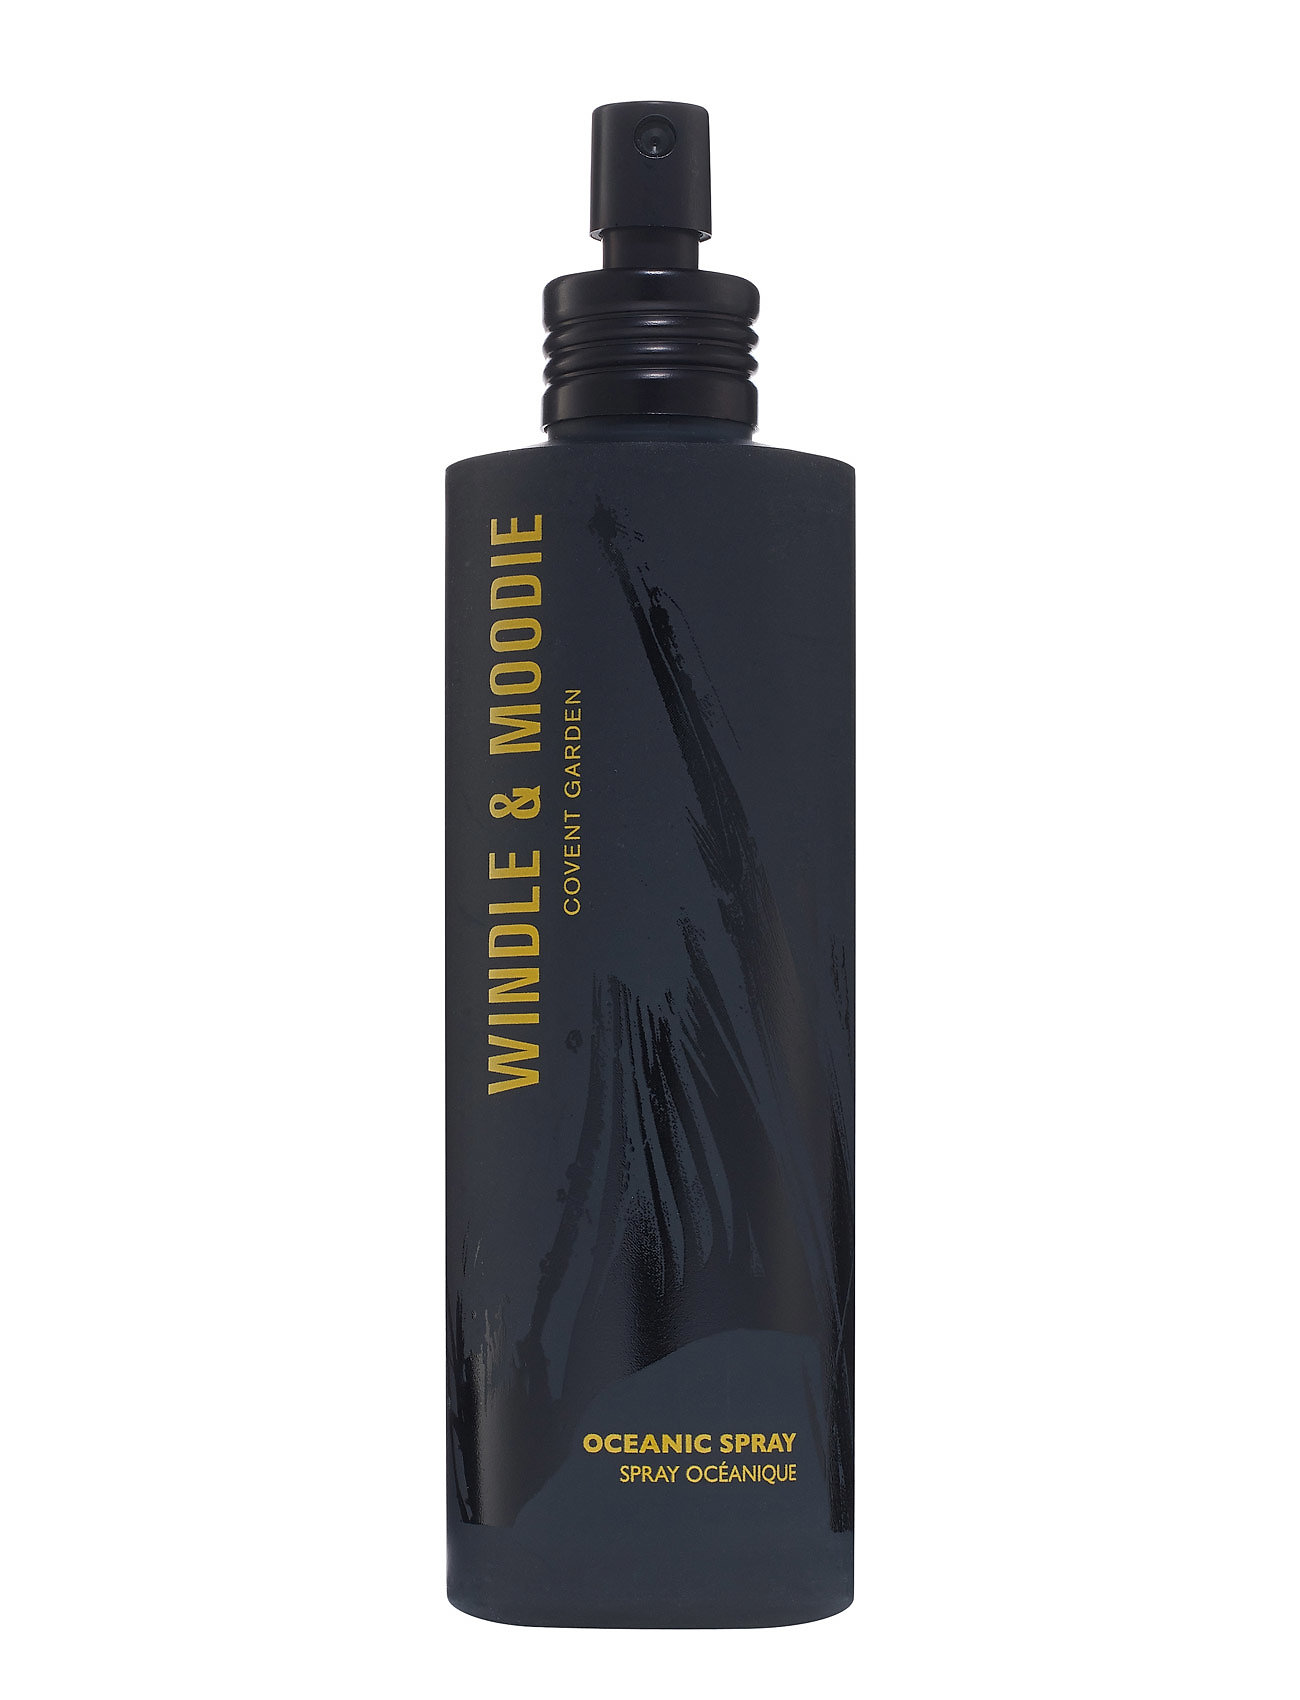 windle & moodie Fortifying spray på boozt.com dk